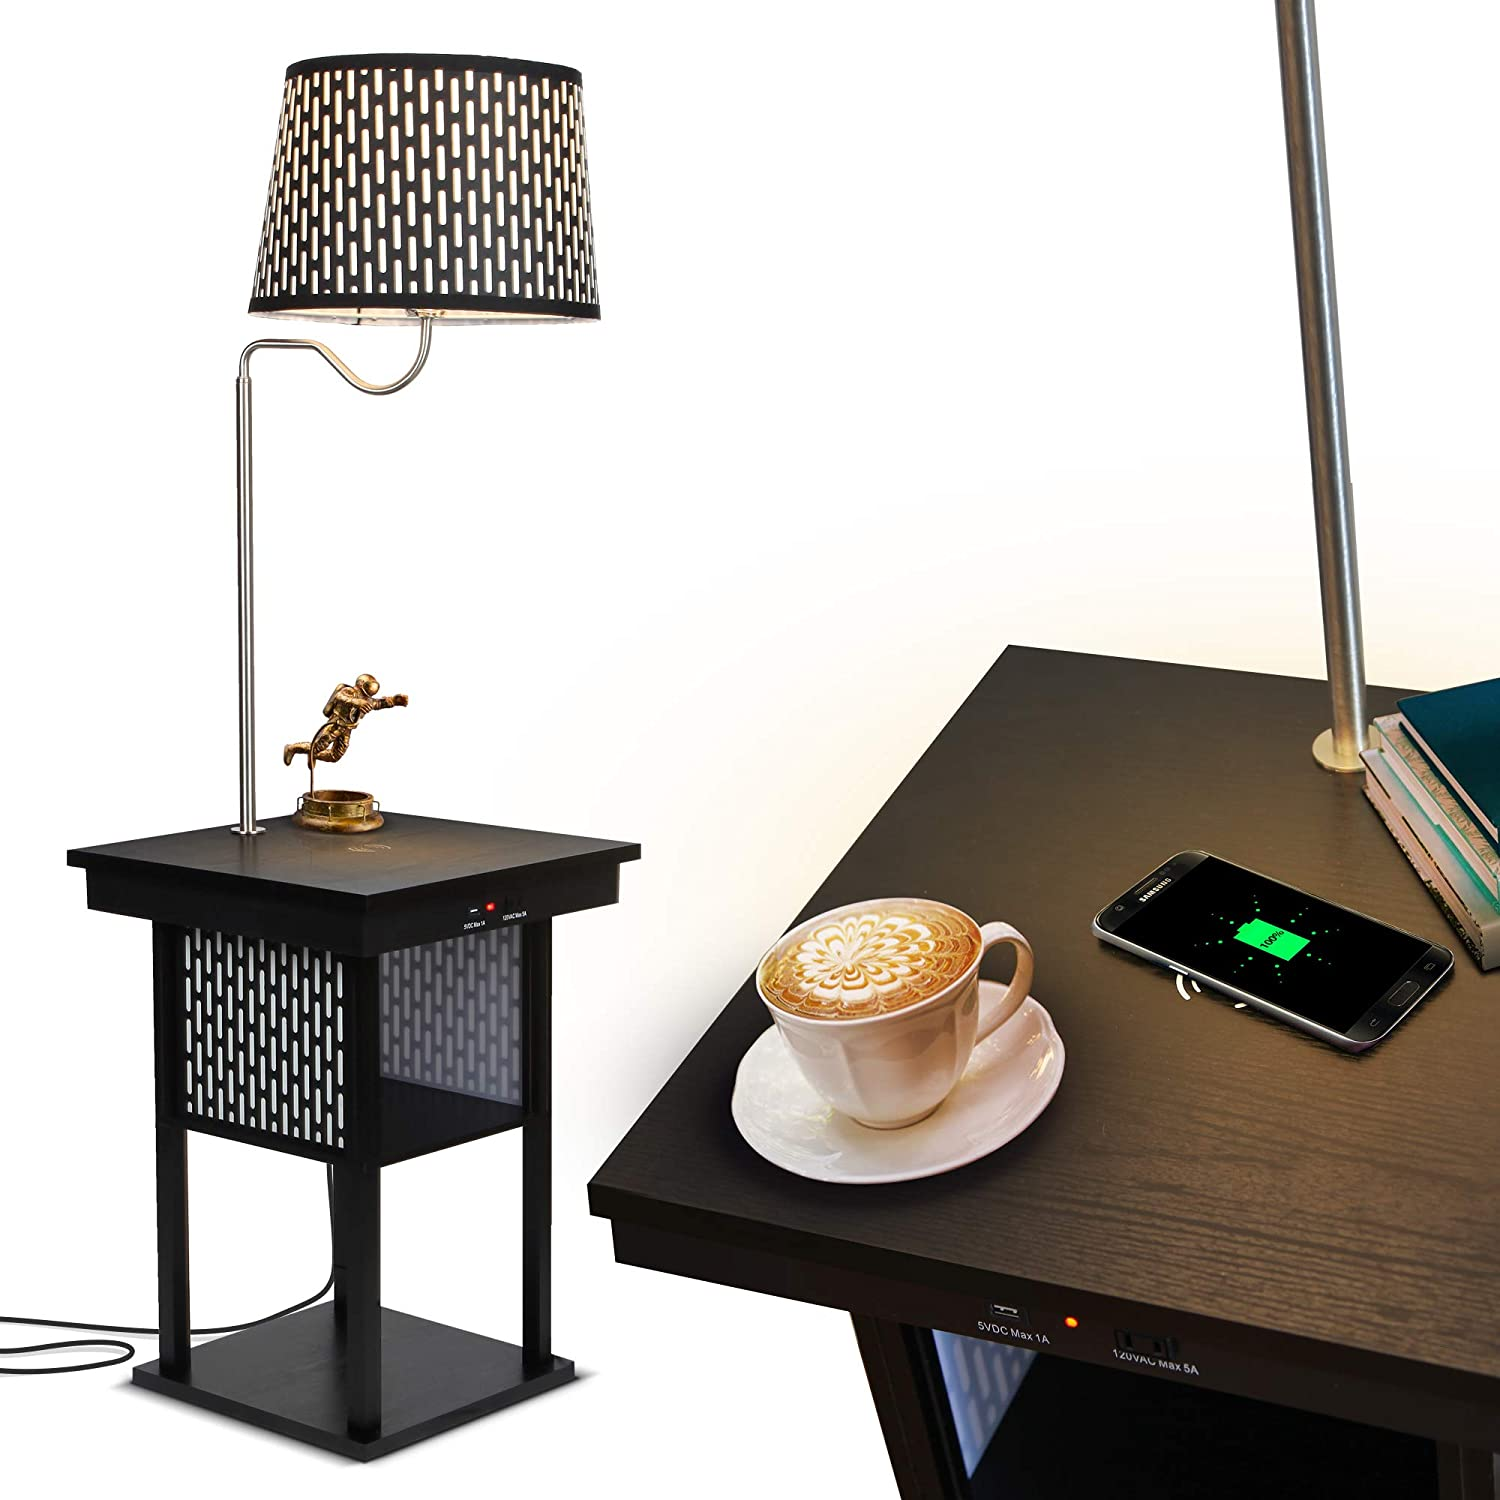 Brightech Madison LED Wireless Charging Pad and USB Port